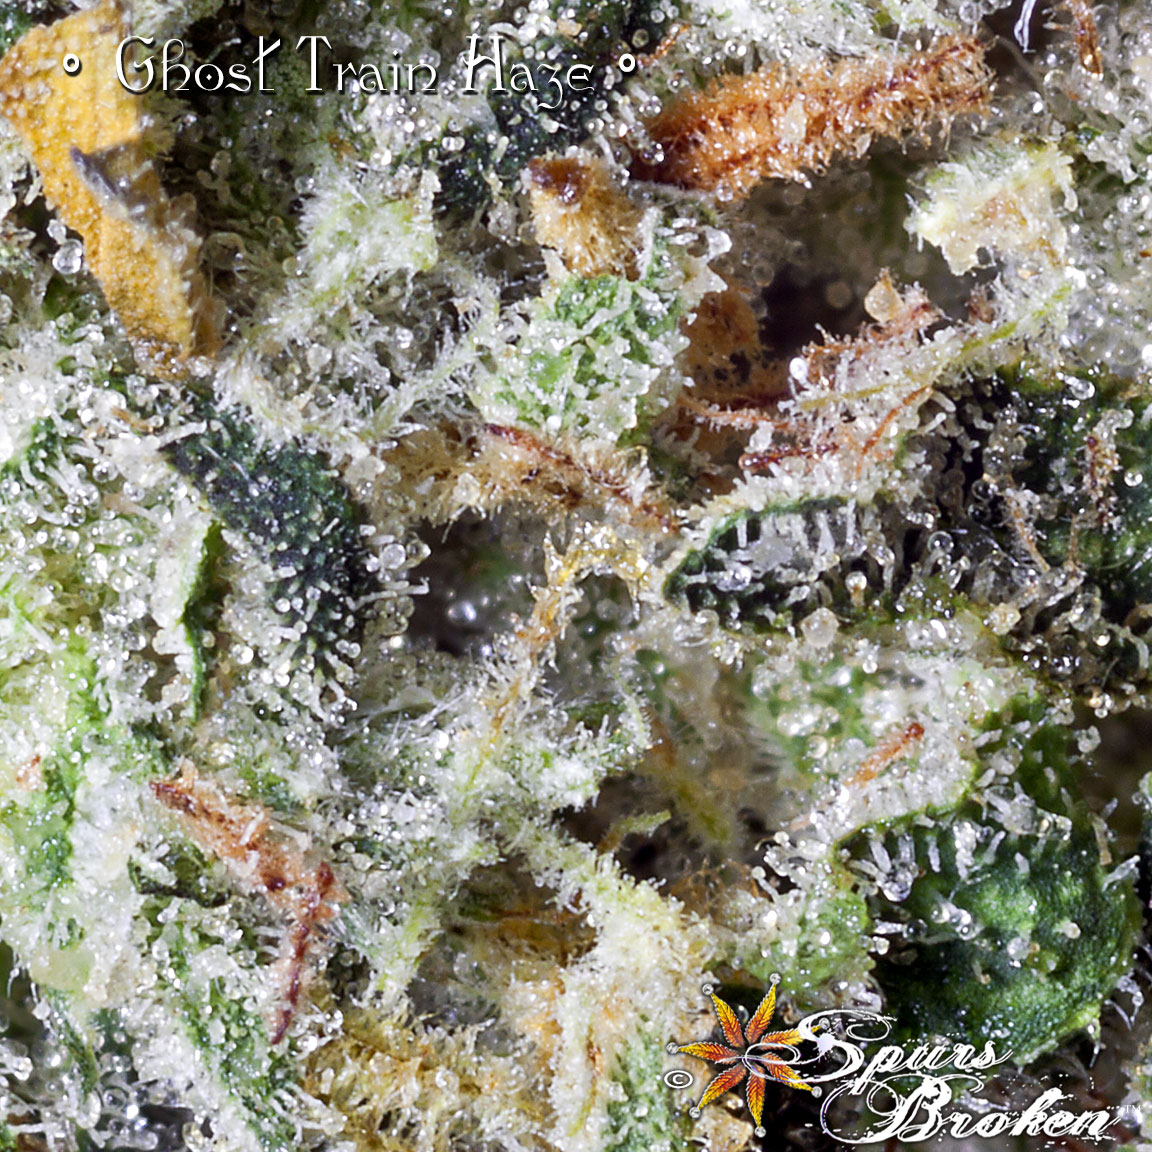 Ghost Train Haze -Cannabis Macro Photography by Spurs Broken (Robert R. Sanders)